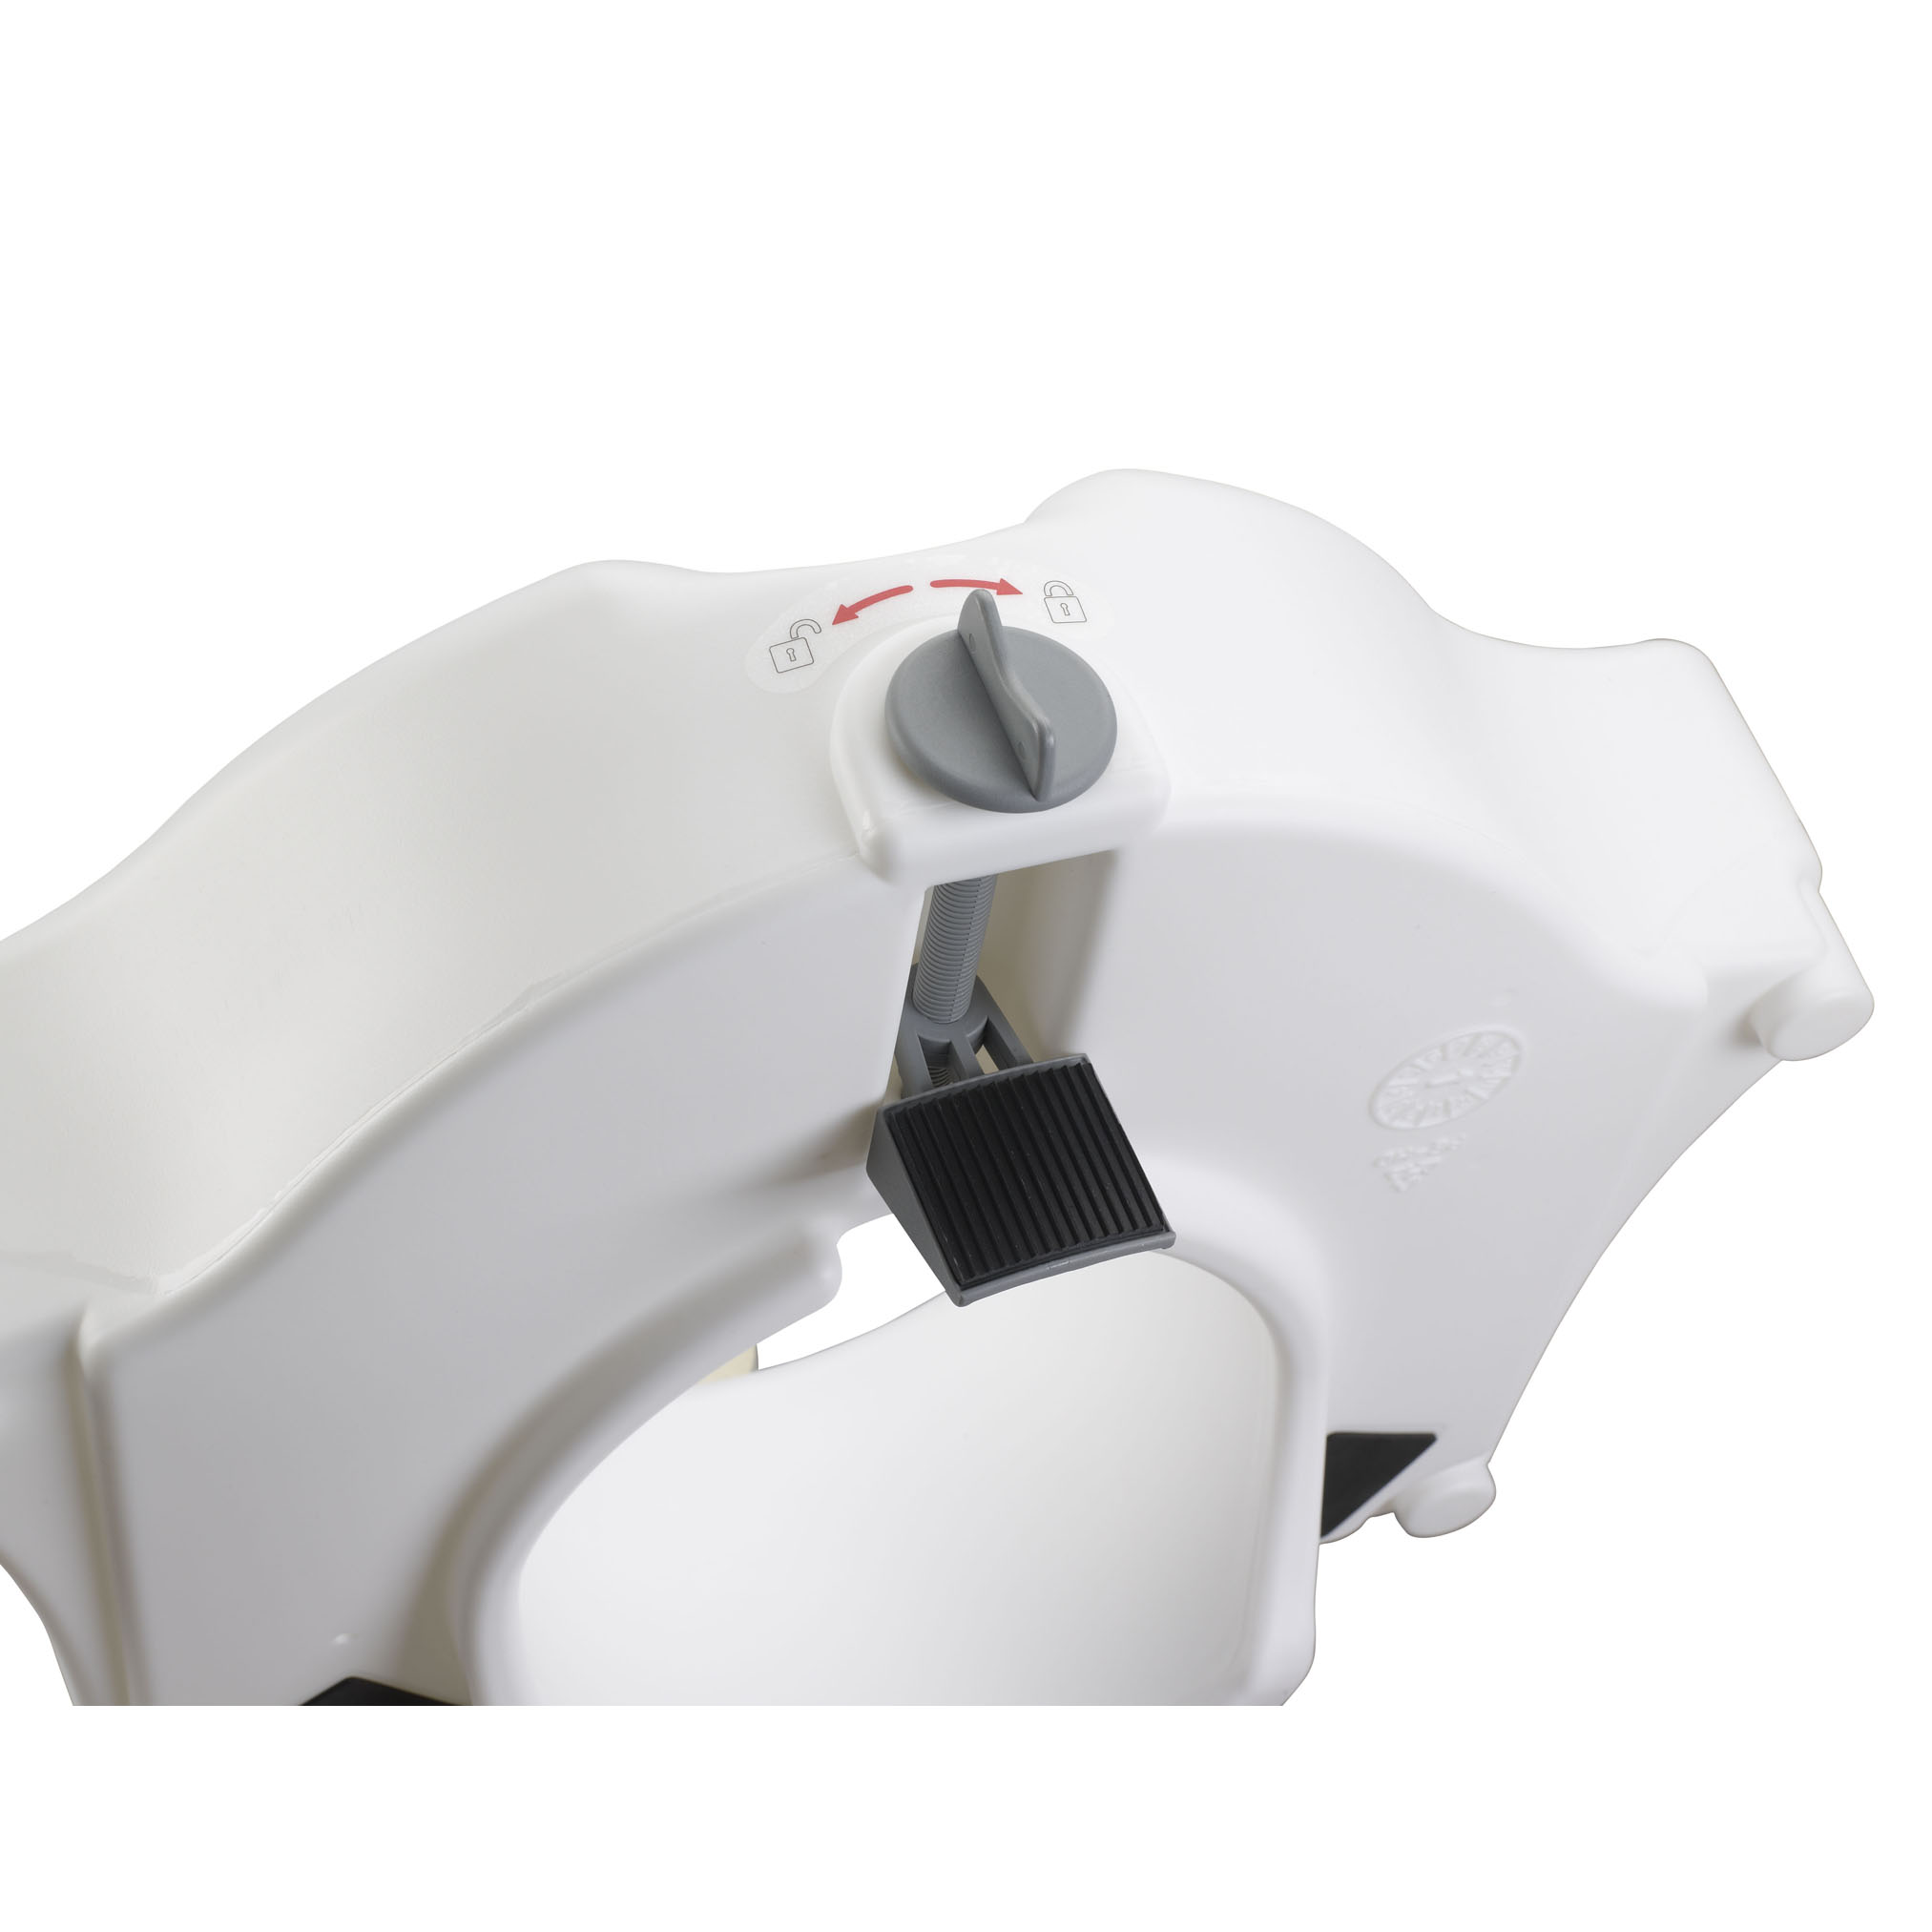 elevated-toilet-seat-without-arms-rtl12026-drive-medical-4.jpg